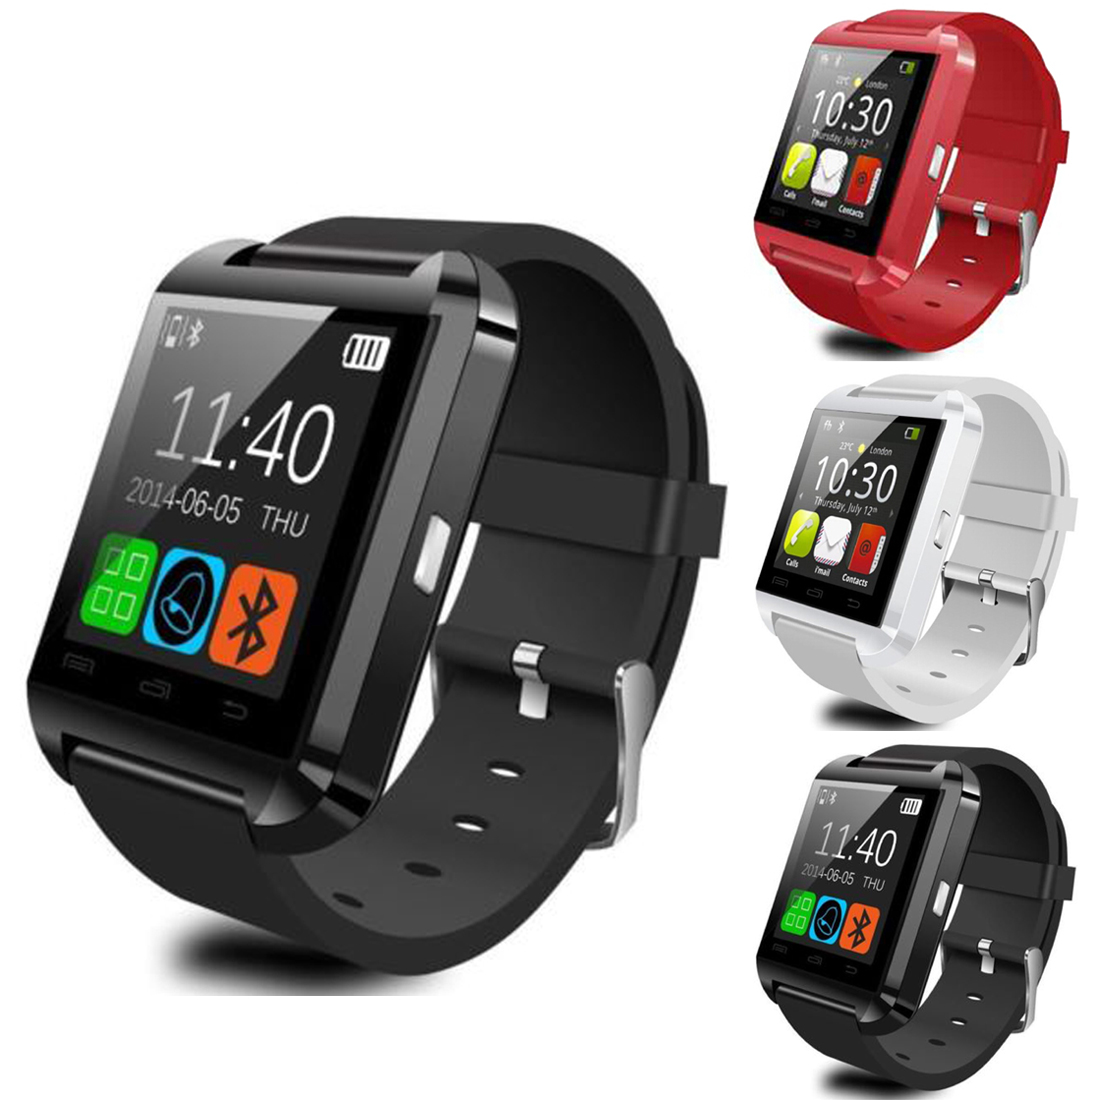 MeboyixiMeboyixi U8 Smartwatch U Watch Bluetooth Smart Watch For Samsung Sony Huawei Xiaomi Android-in Smart Watches from Consumer Electronics on AliExpress